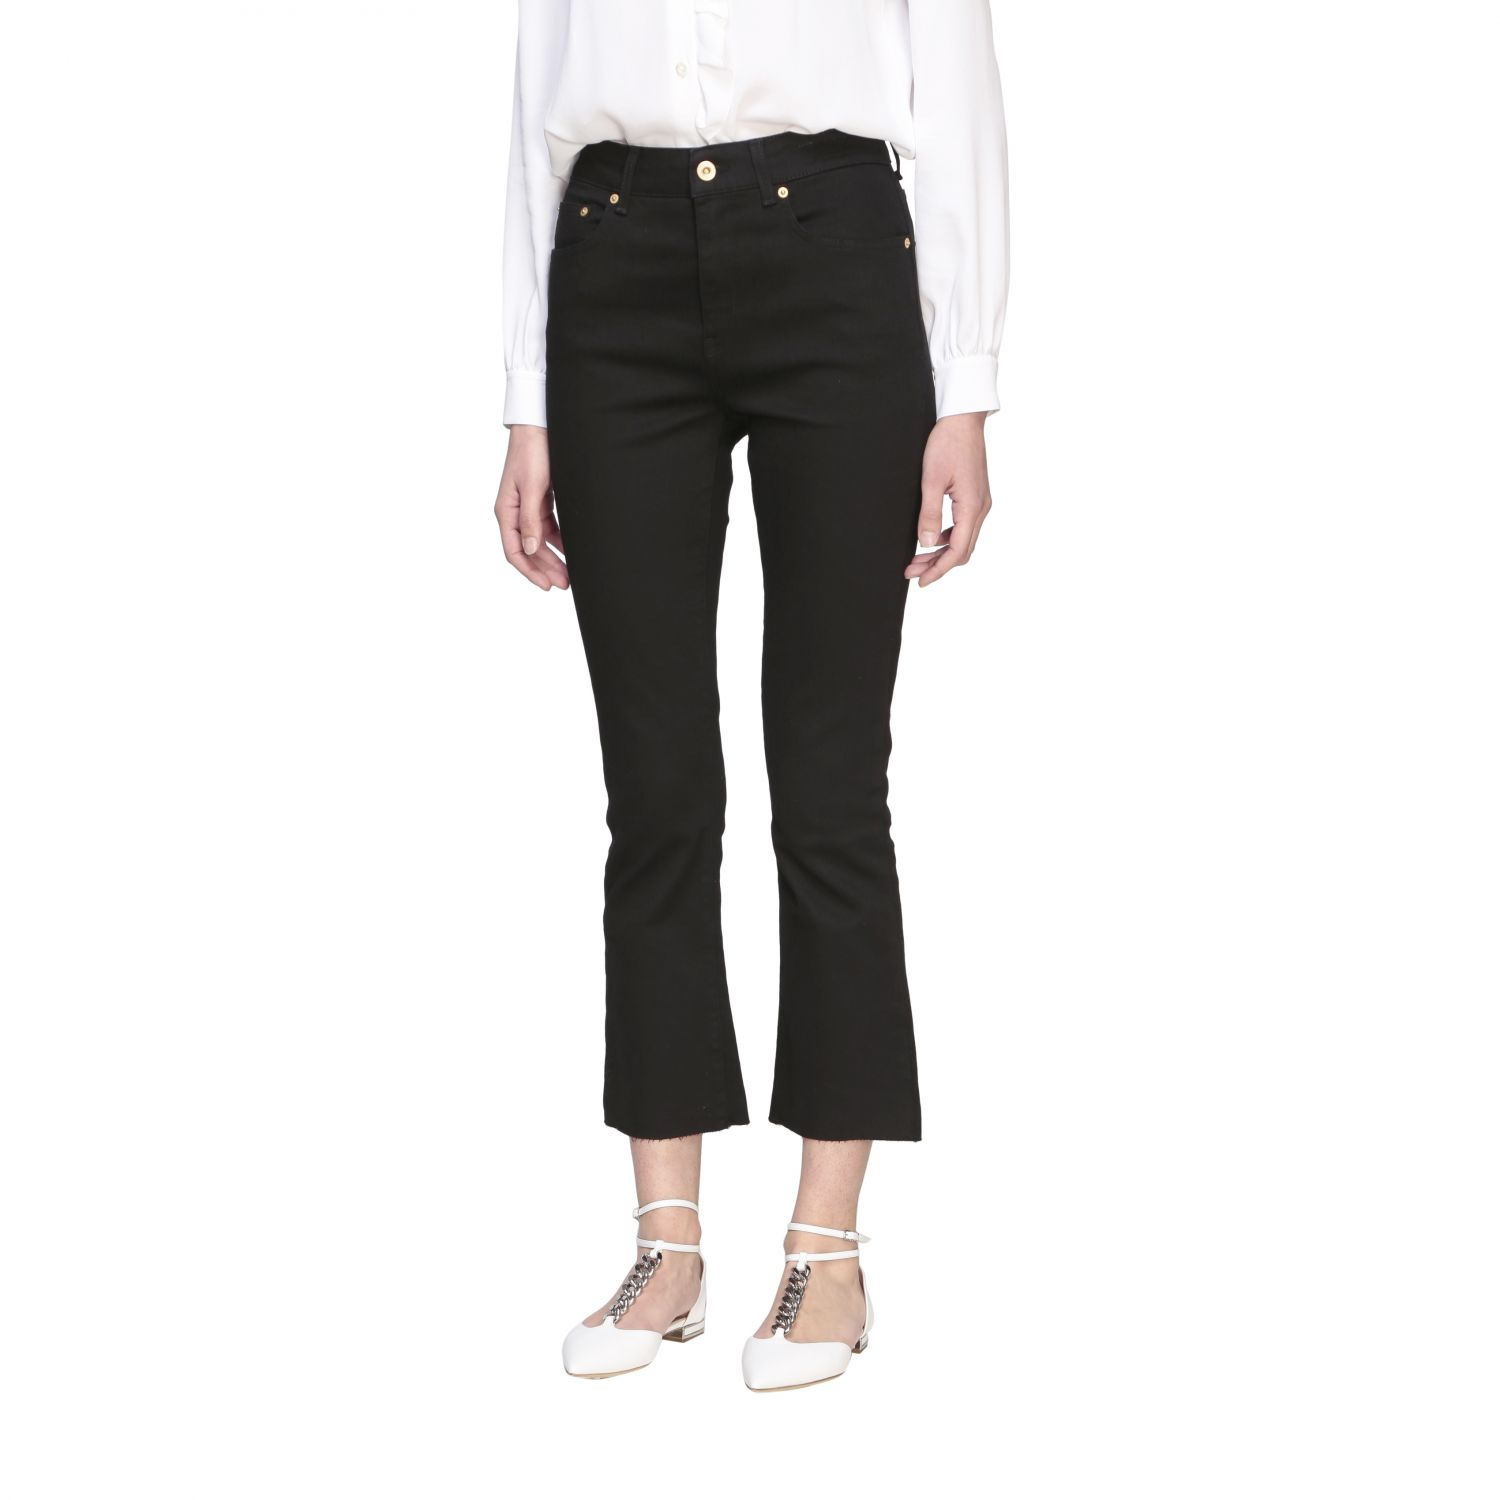 Department 5 Clare slim fit jeans with 5 pockets black 4